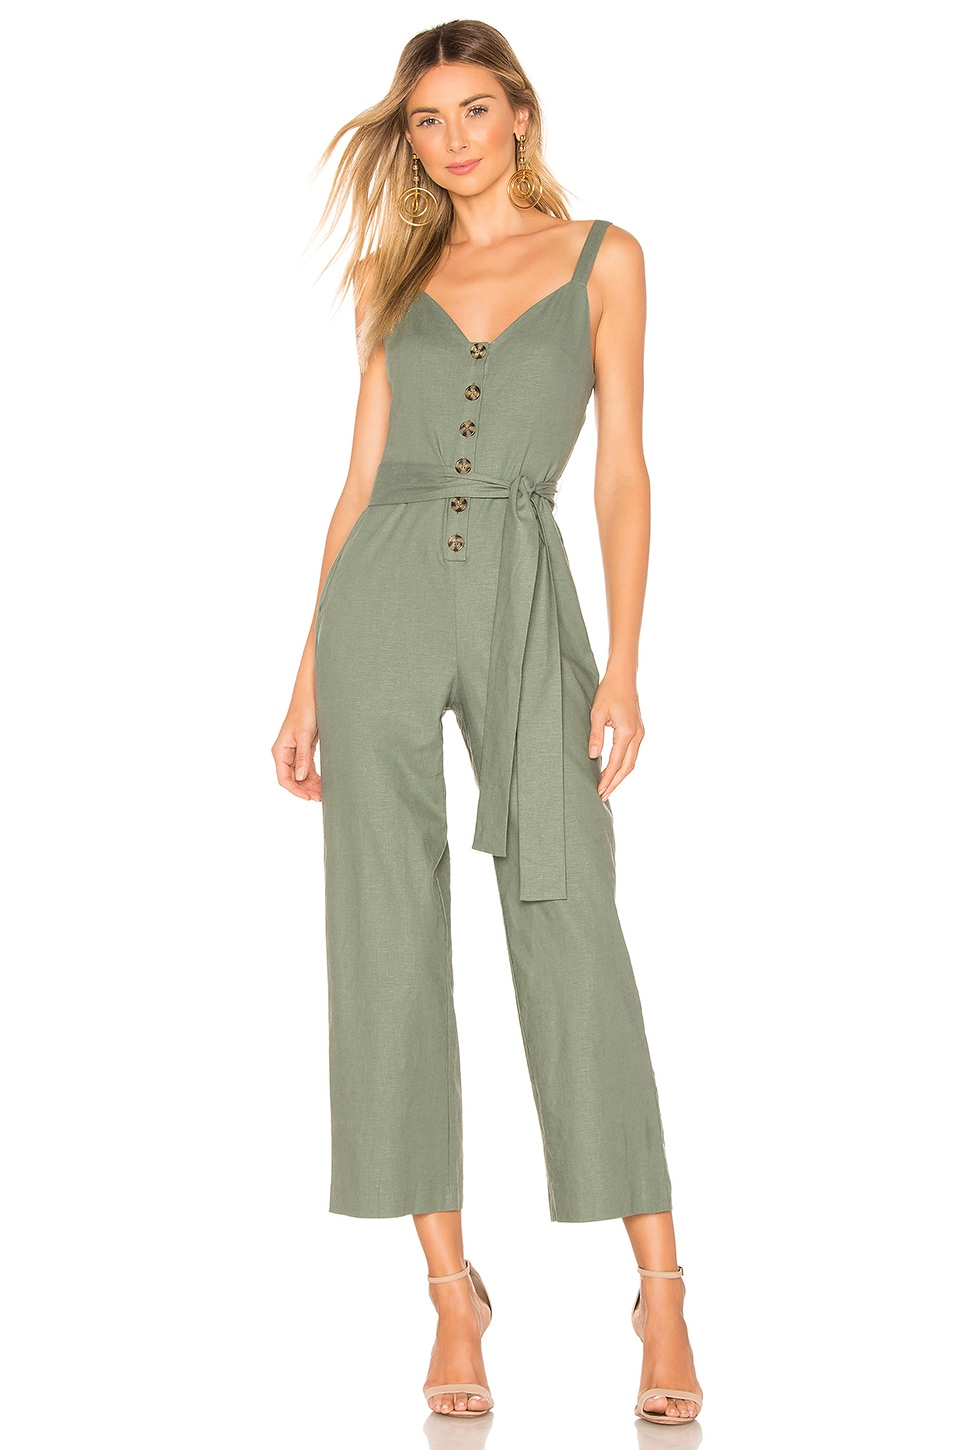 Privacy Please Rosemary Jumpsuit in Sage Green